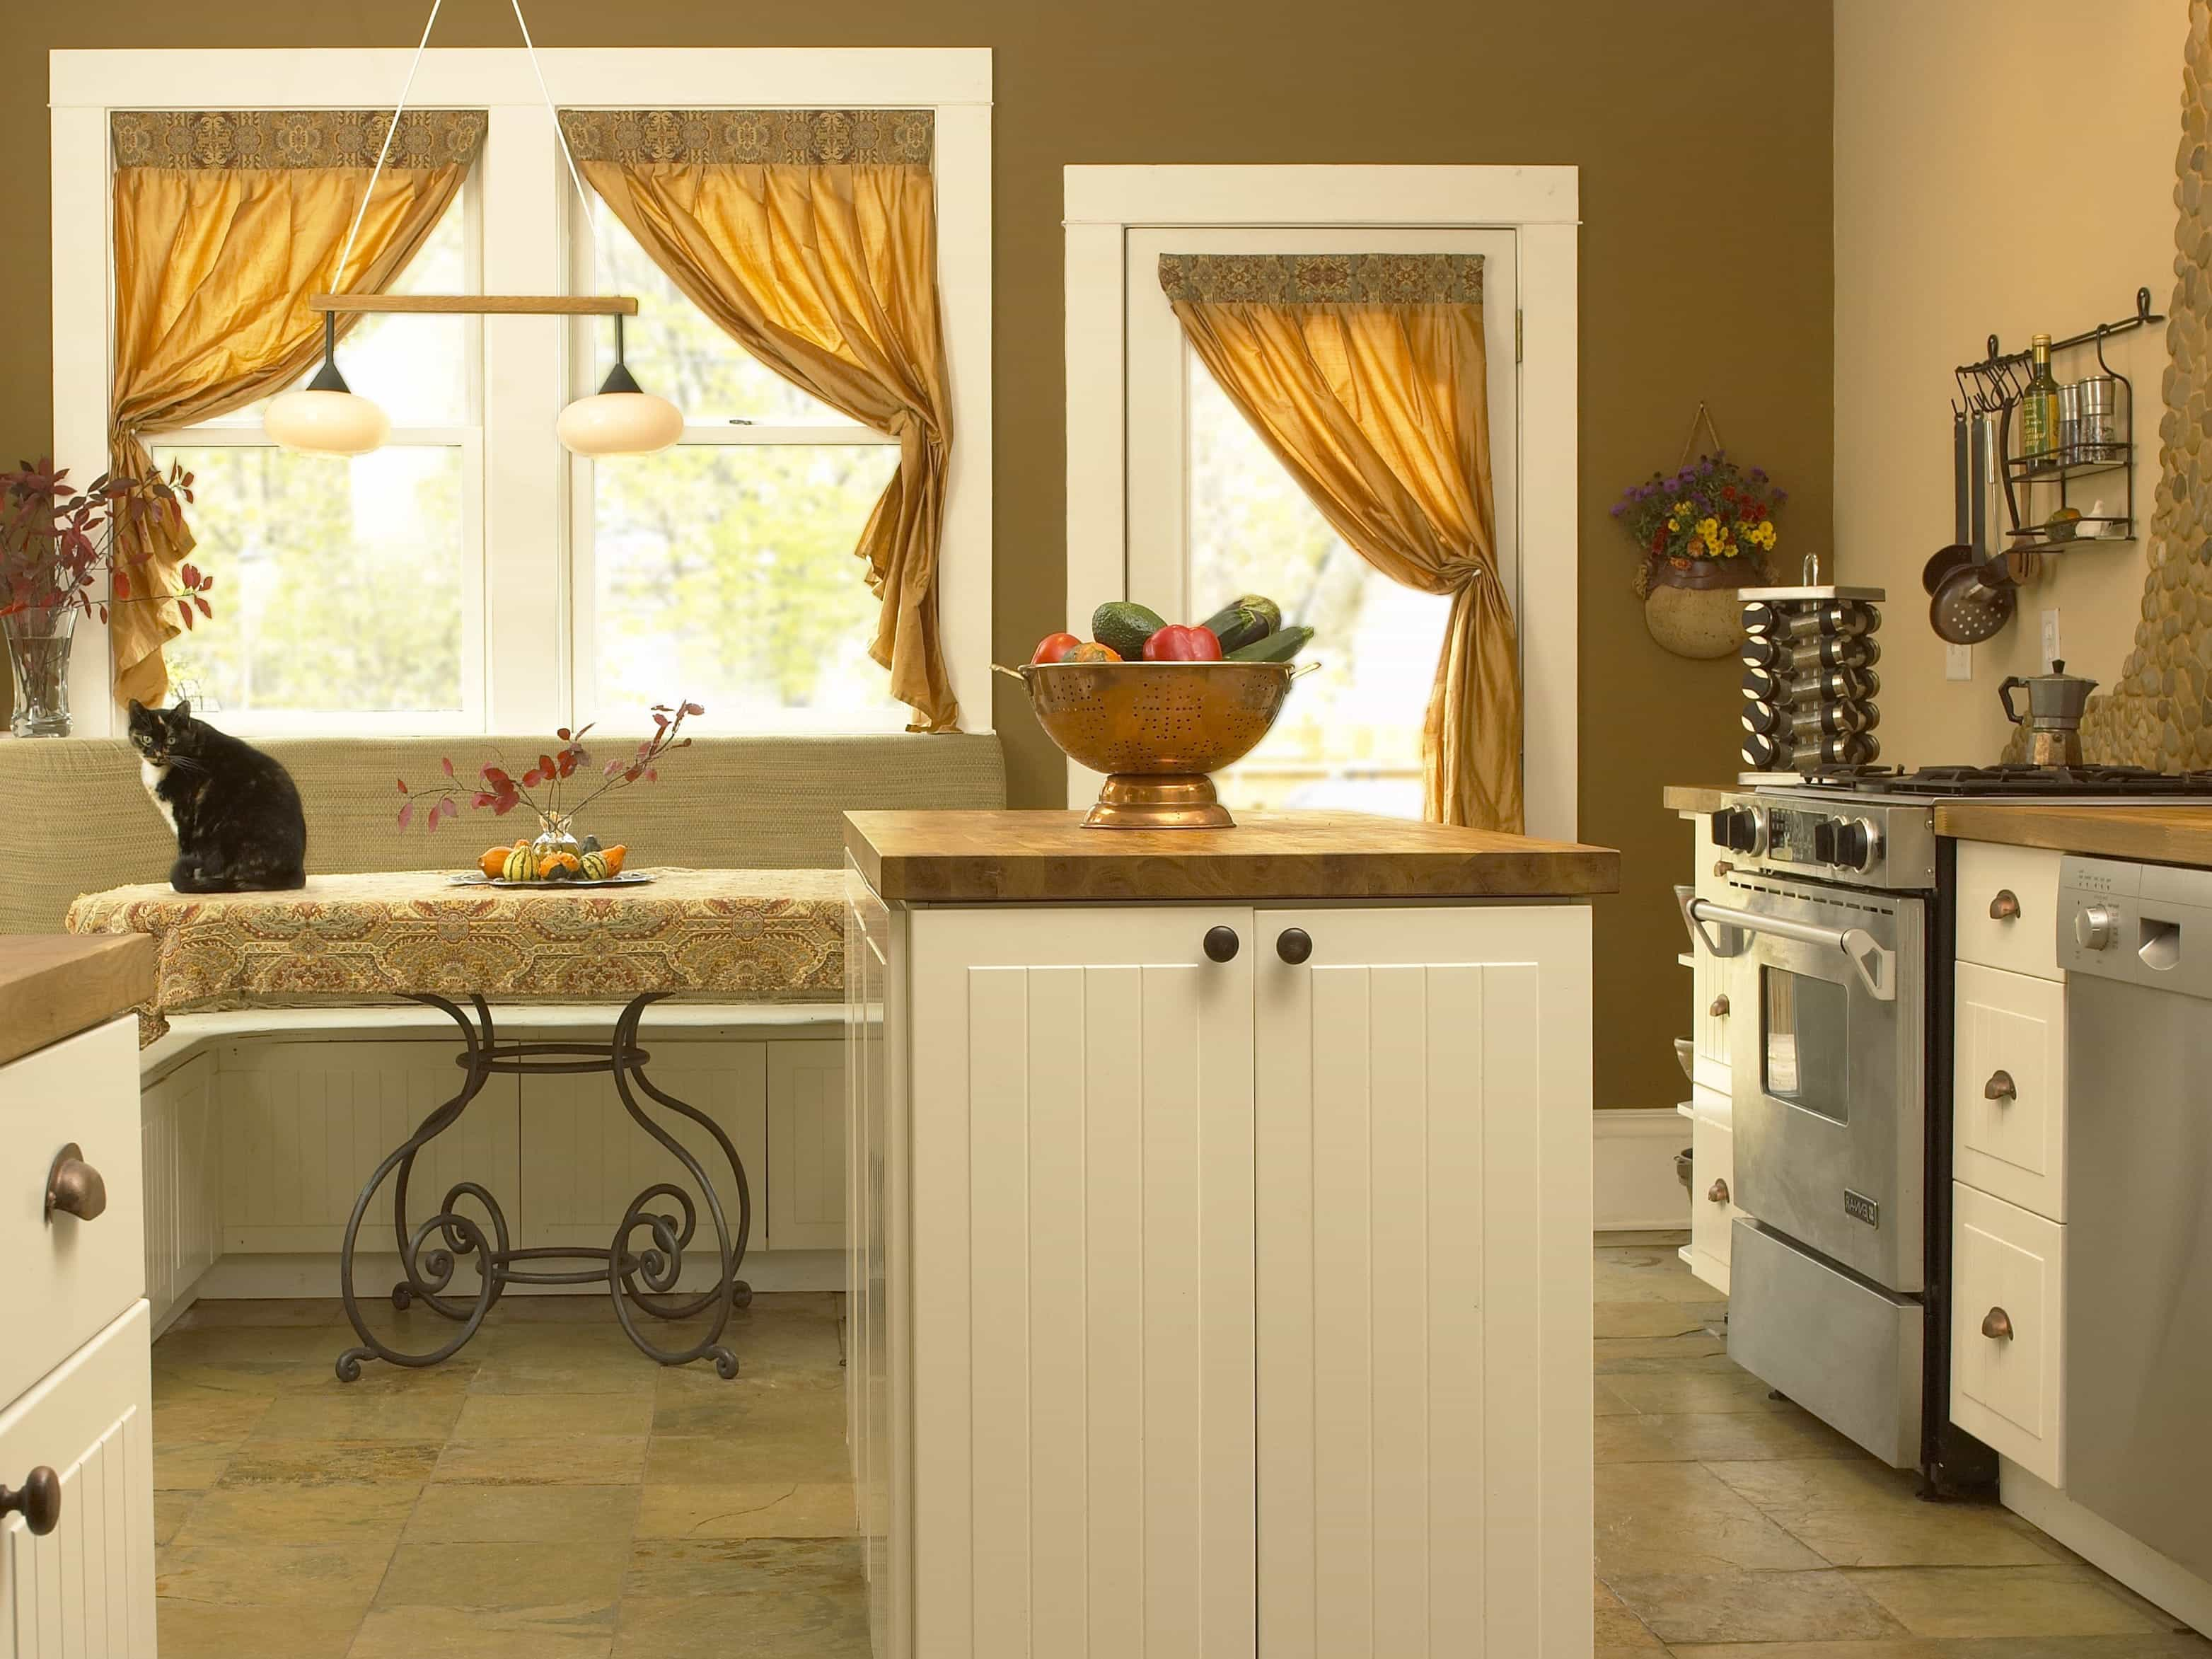 Elegant Bay Window Curtain For Traditional Kitchen Interior (Image 2 of 11)